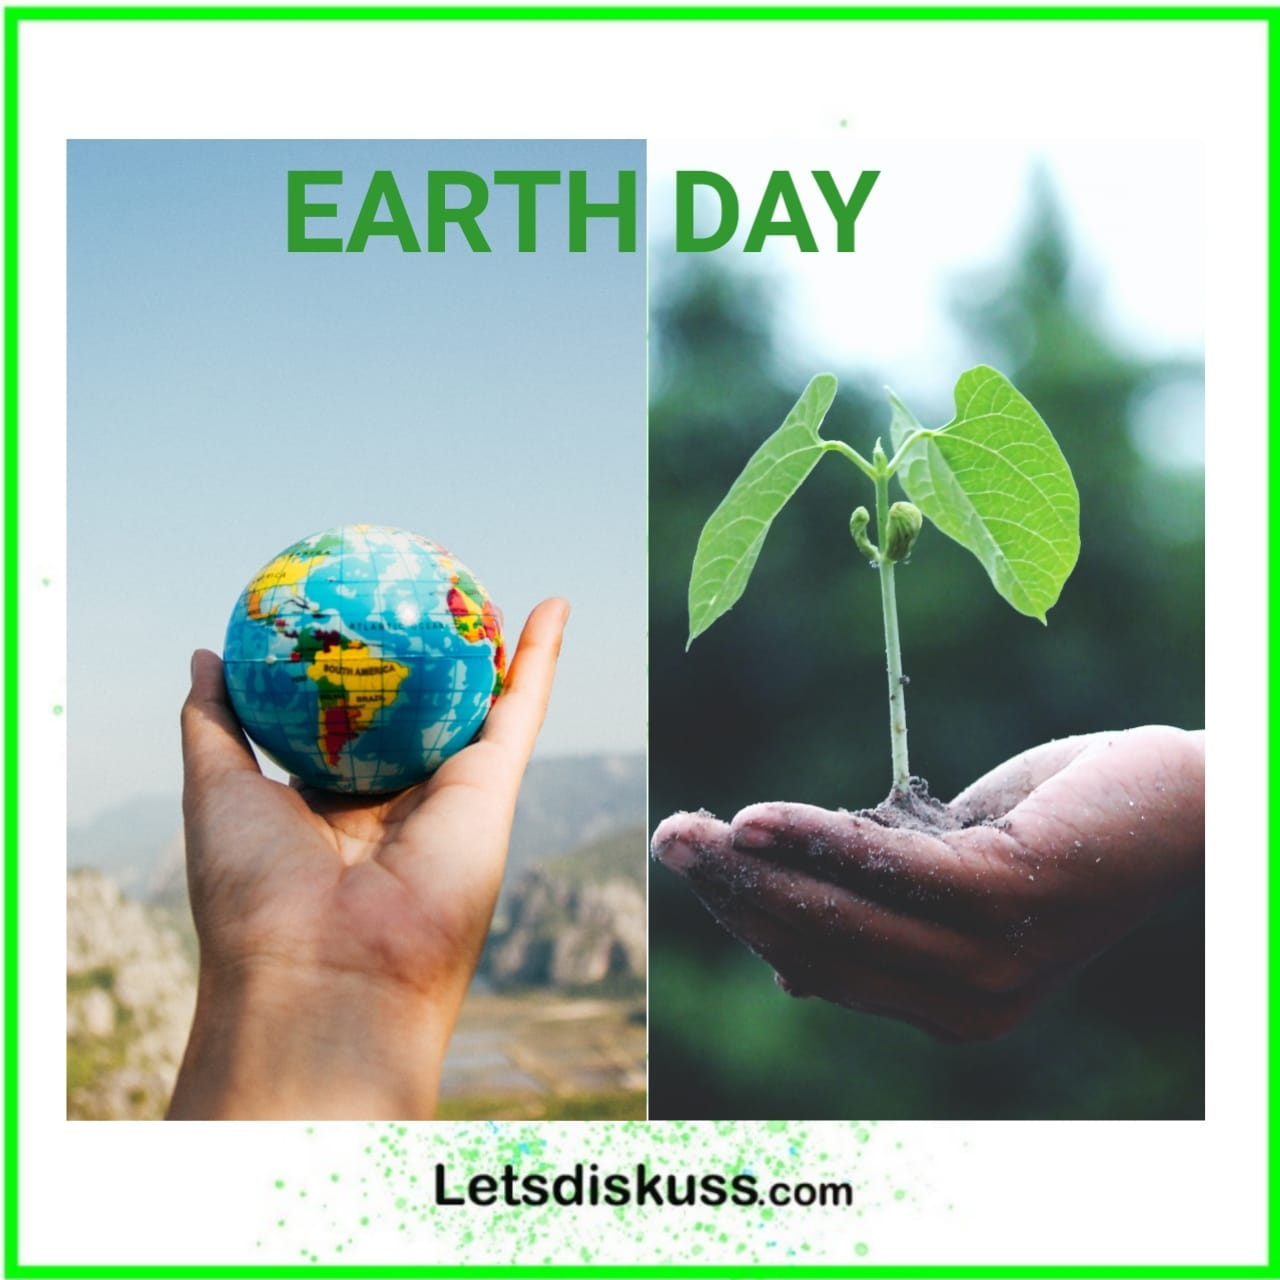 <p class='stitle'>Save the earth</p><div class='col-xs-6 col-sm-6 col-md-6 text-center'><a class='slider_share' href='#'' data-toggle='modal' data-target='#myModal'><i class='fa fa-heart-o'></i></a></div><div class='col-xs-6 col-sm-6 col-md-6 text-center'><a href='#share' data-url='myurl' class='slider_share' onClick='shareSlide(916)'><i class='fa fa-share-alt'></i></a></div>